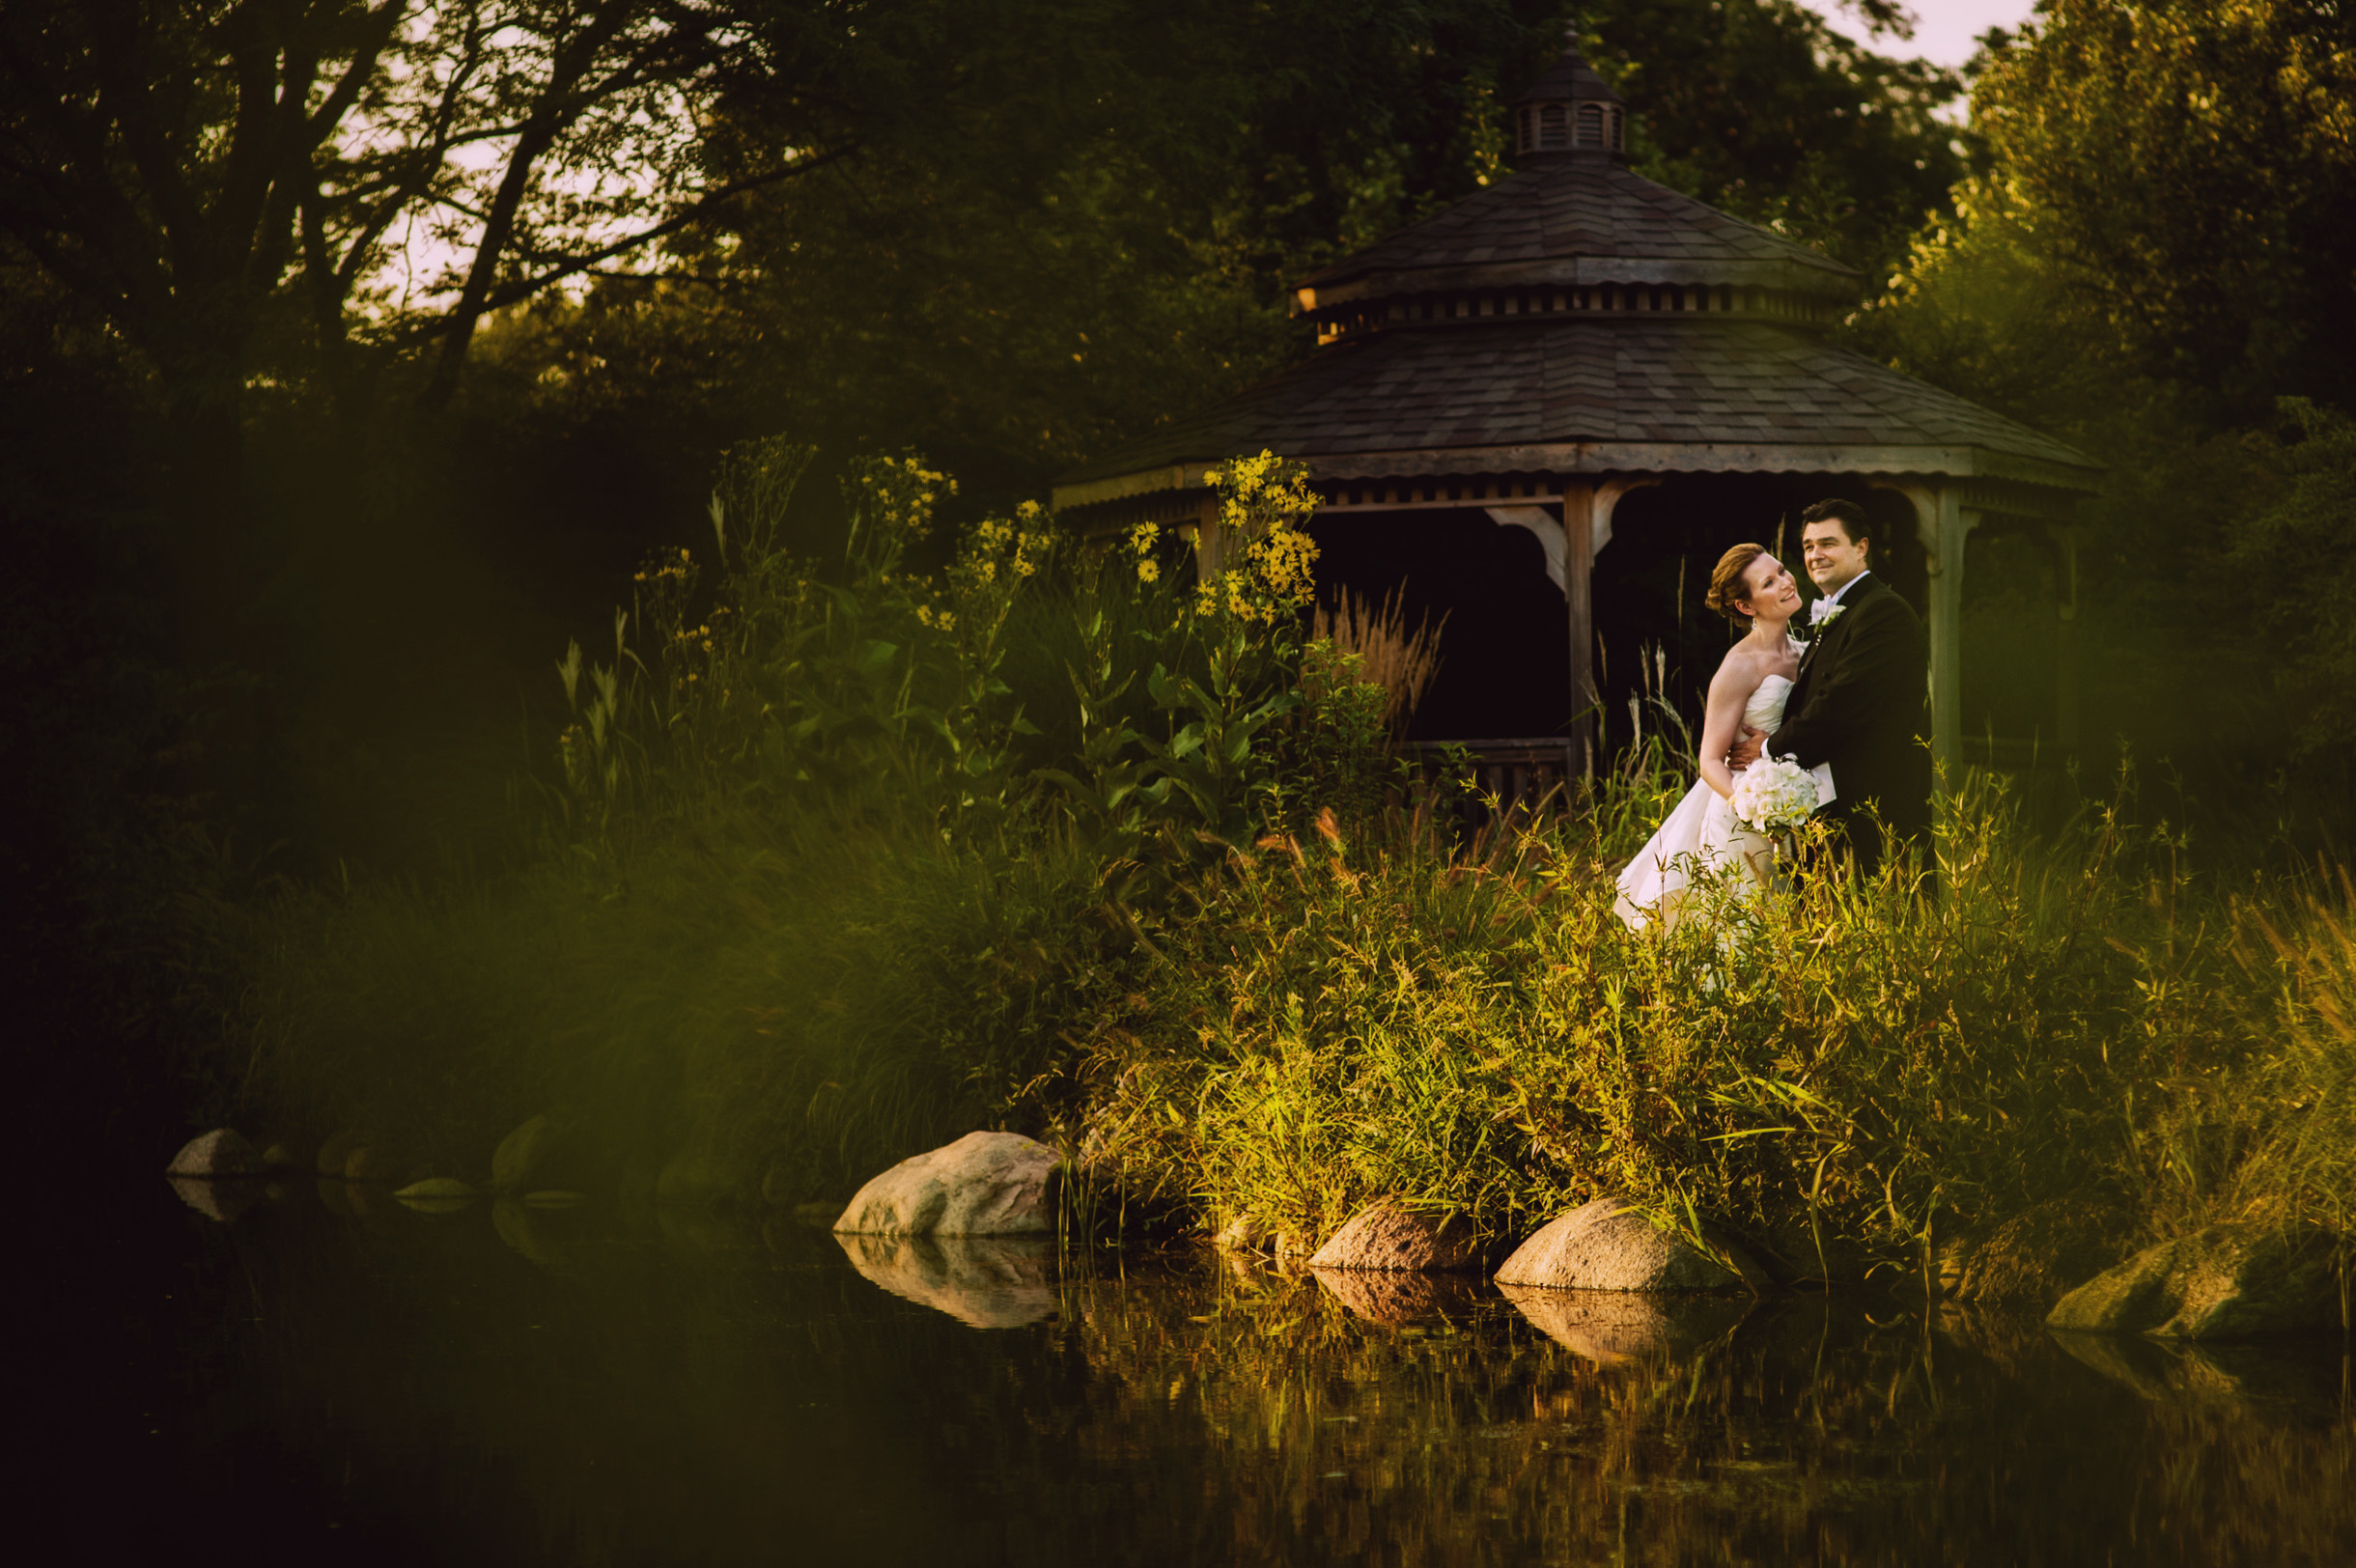 Sunset wedding photo of bride and groom by a gazebo and a lake